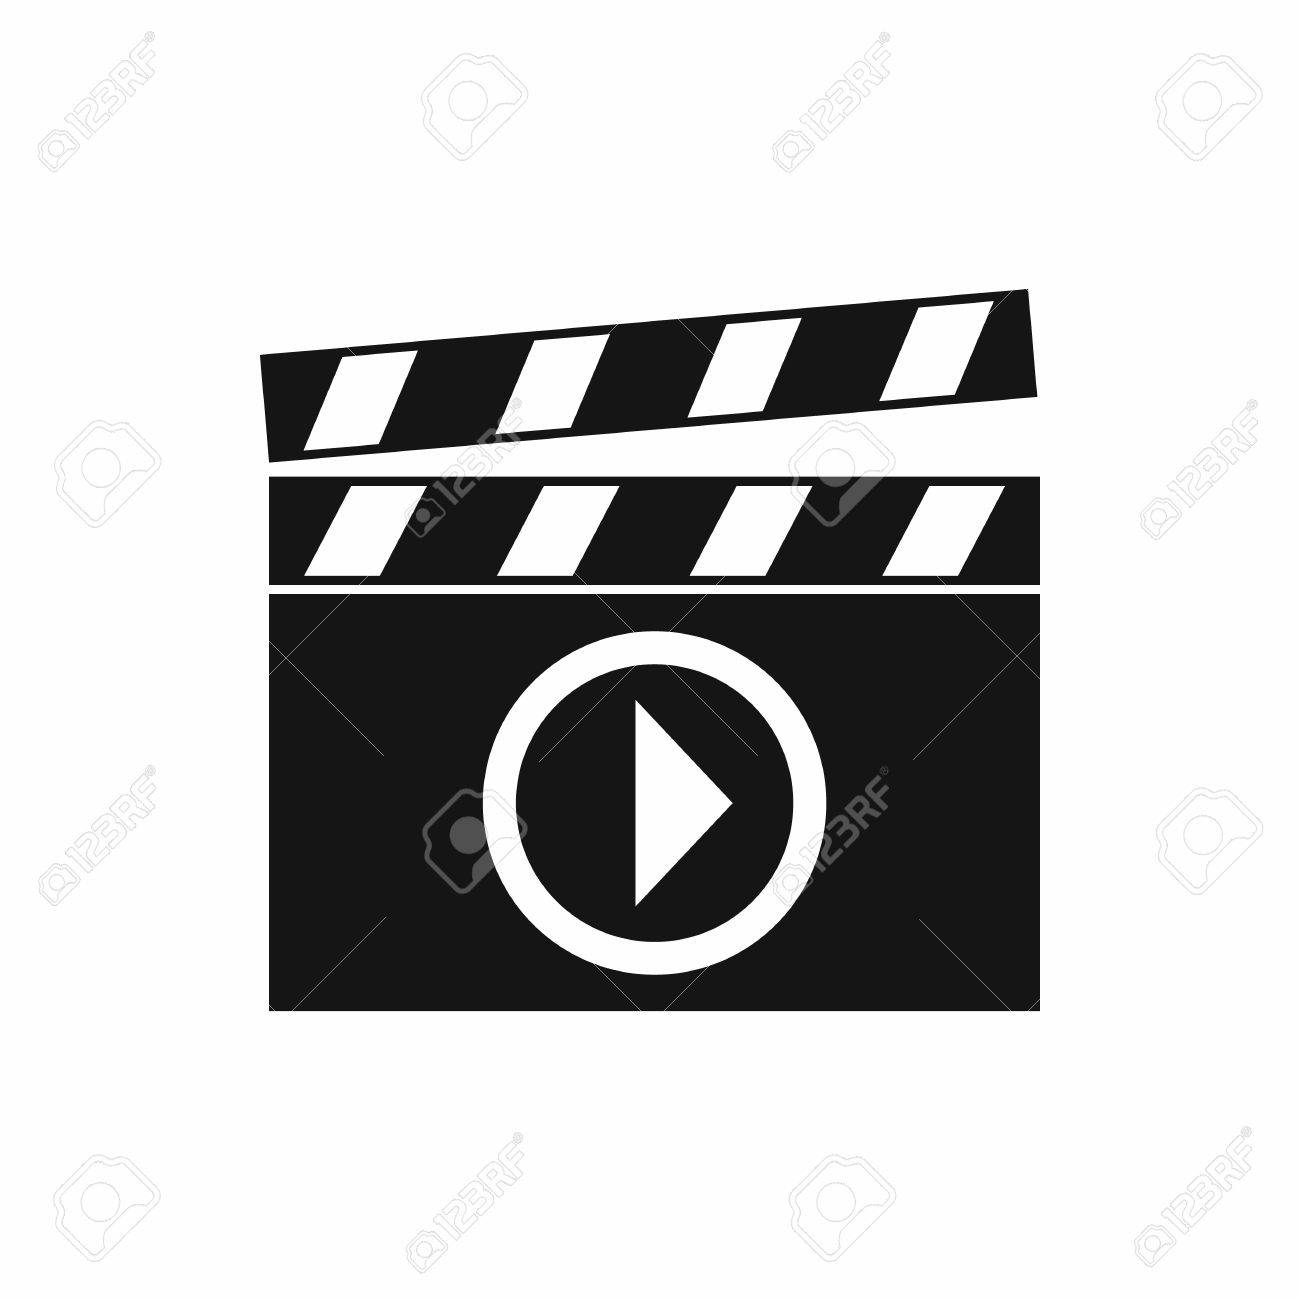 Clapperboard for movie shooting icon in simple style isolated clapperboard for movie shooting icon in simple style isolated on white background film symbol stock biocorpaavc